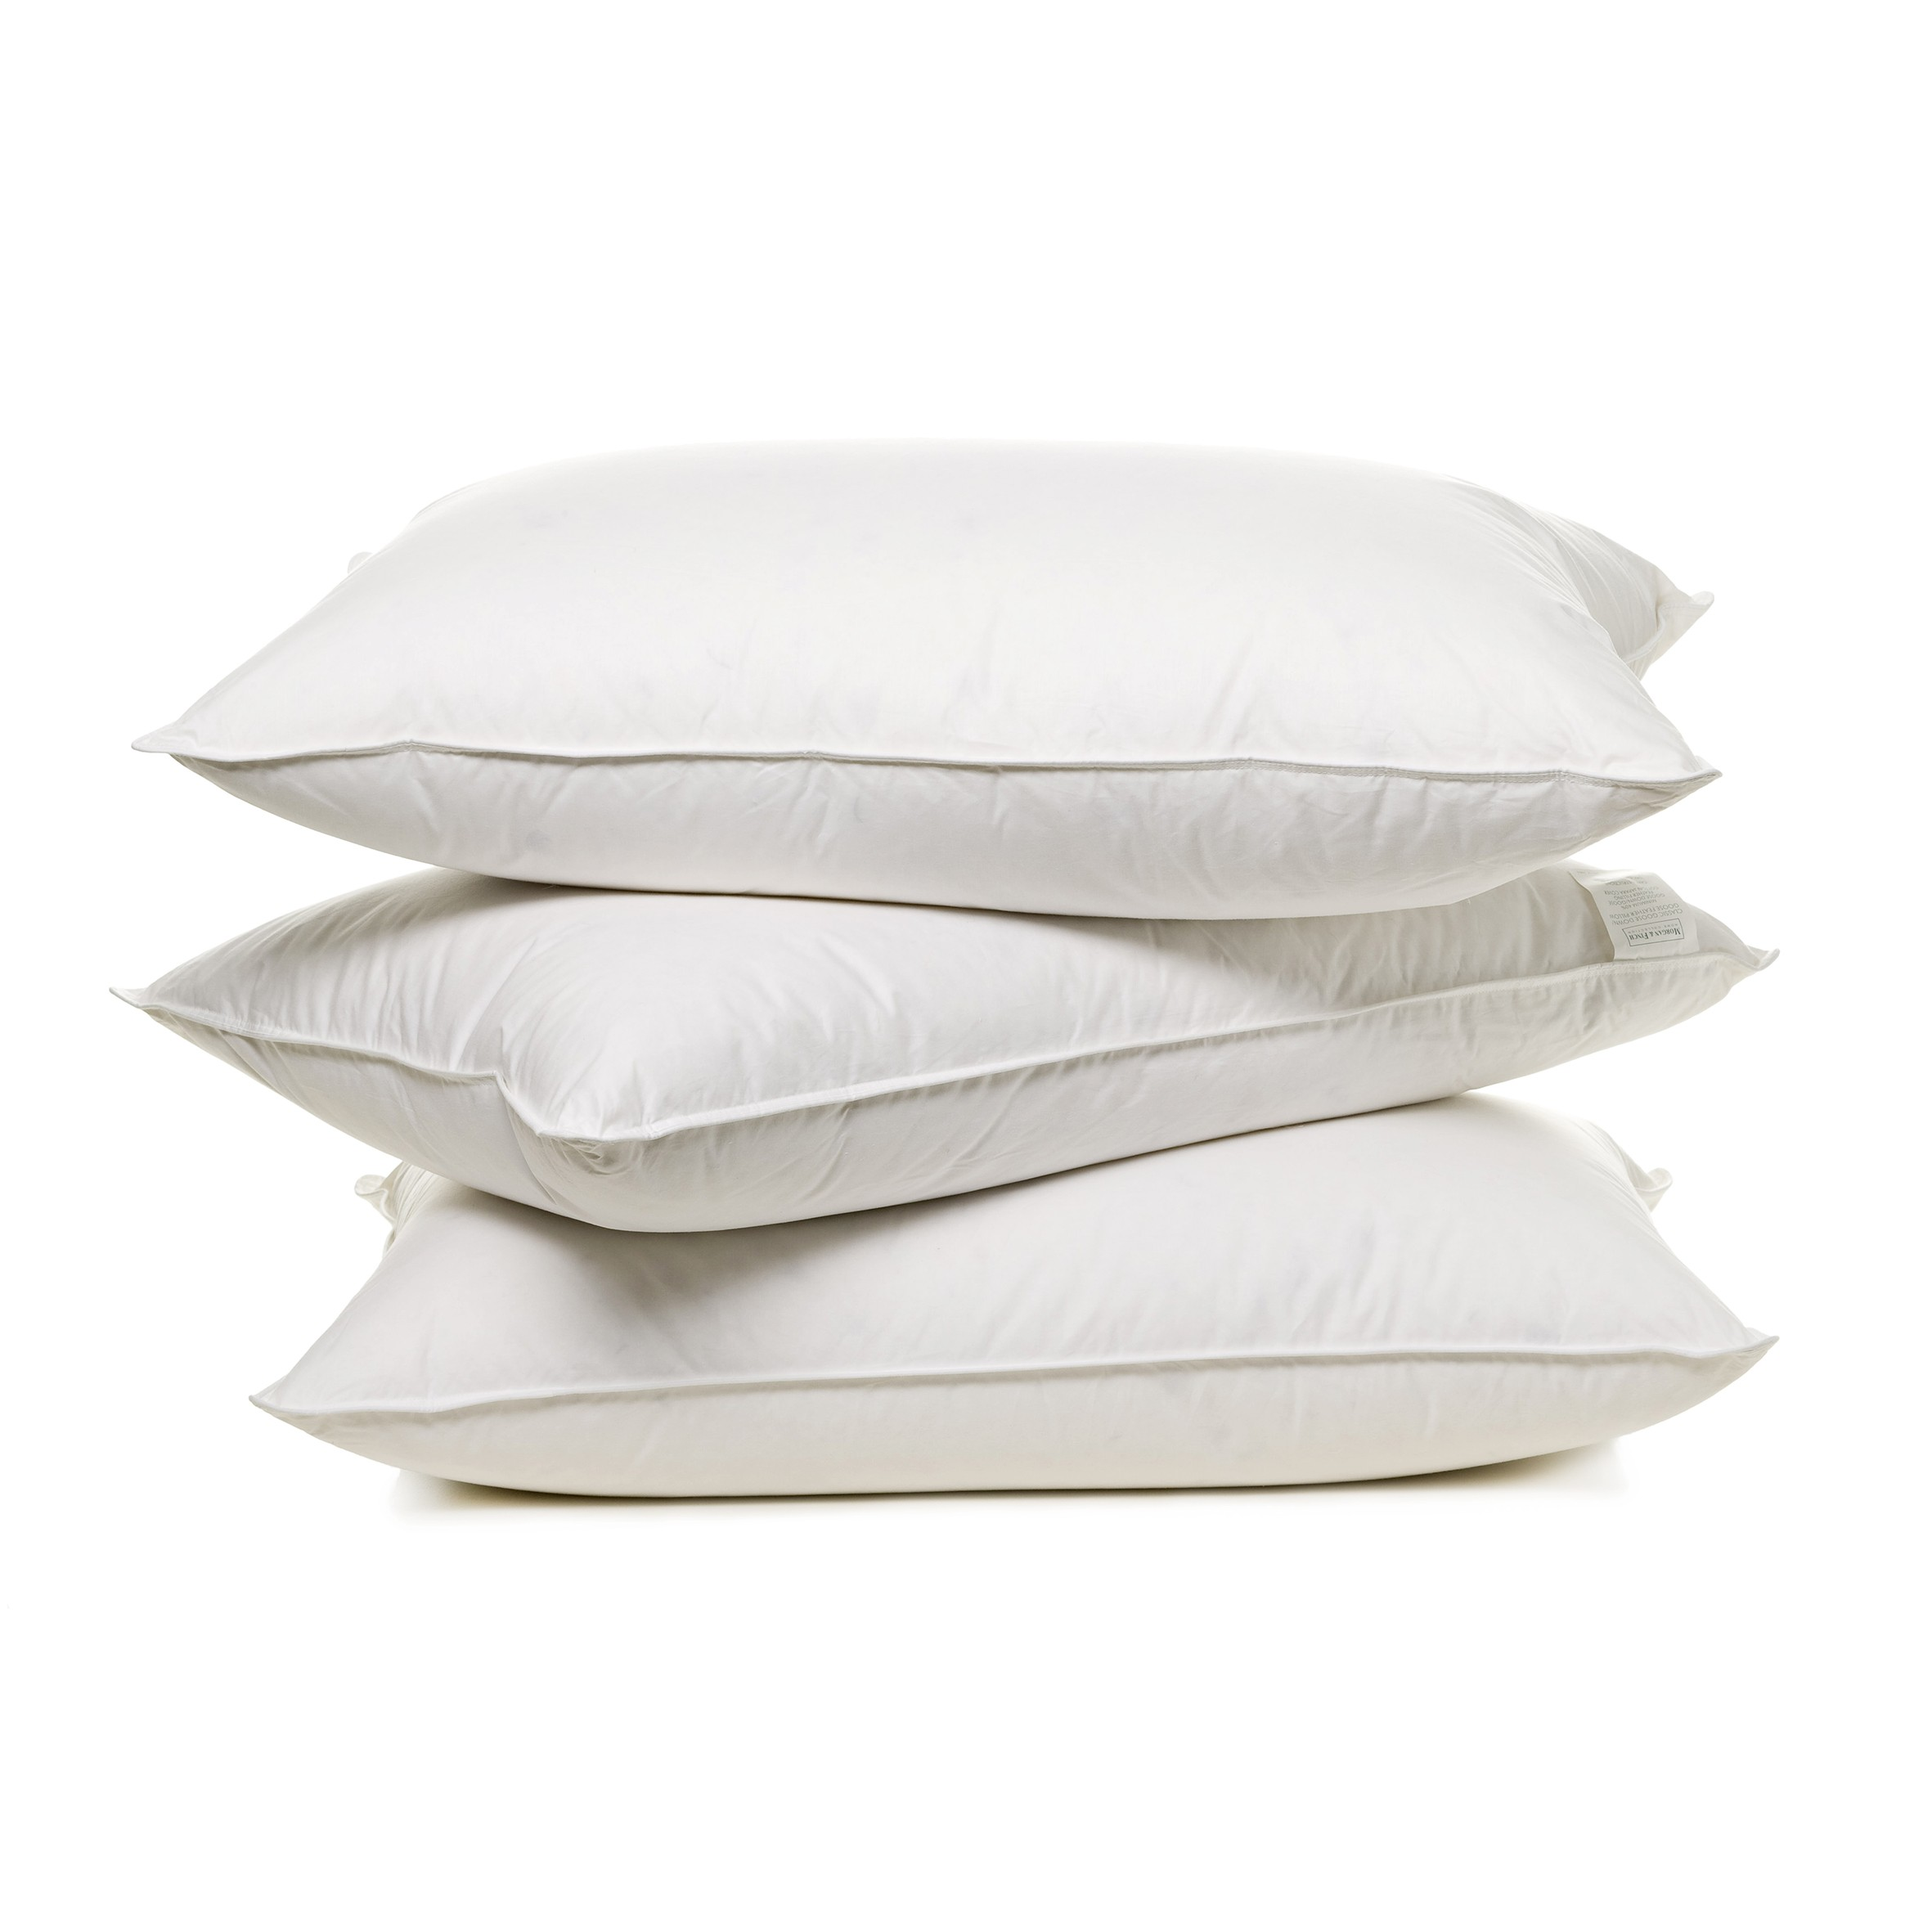 Hullo Pillow How To Clean Buckwheat Pillows Without